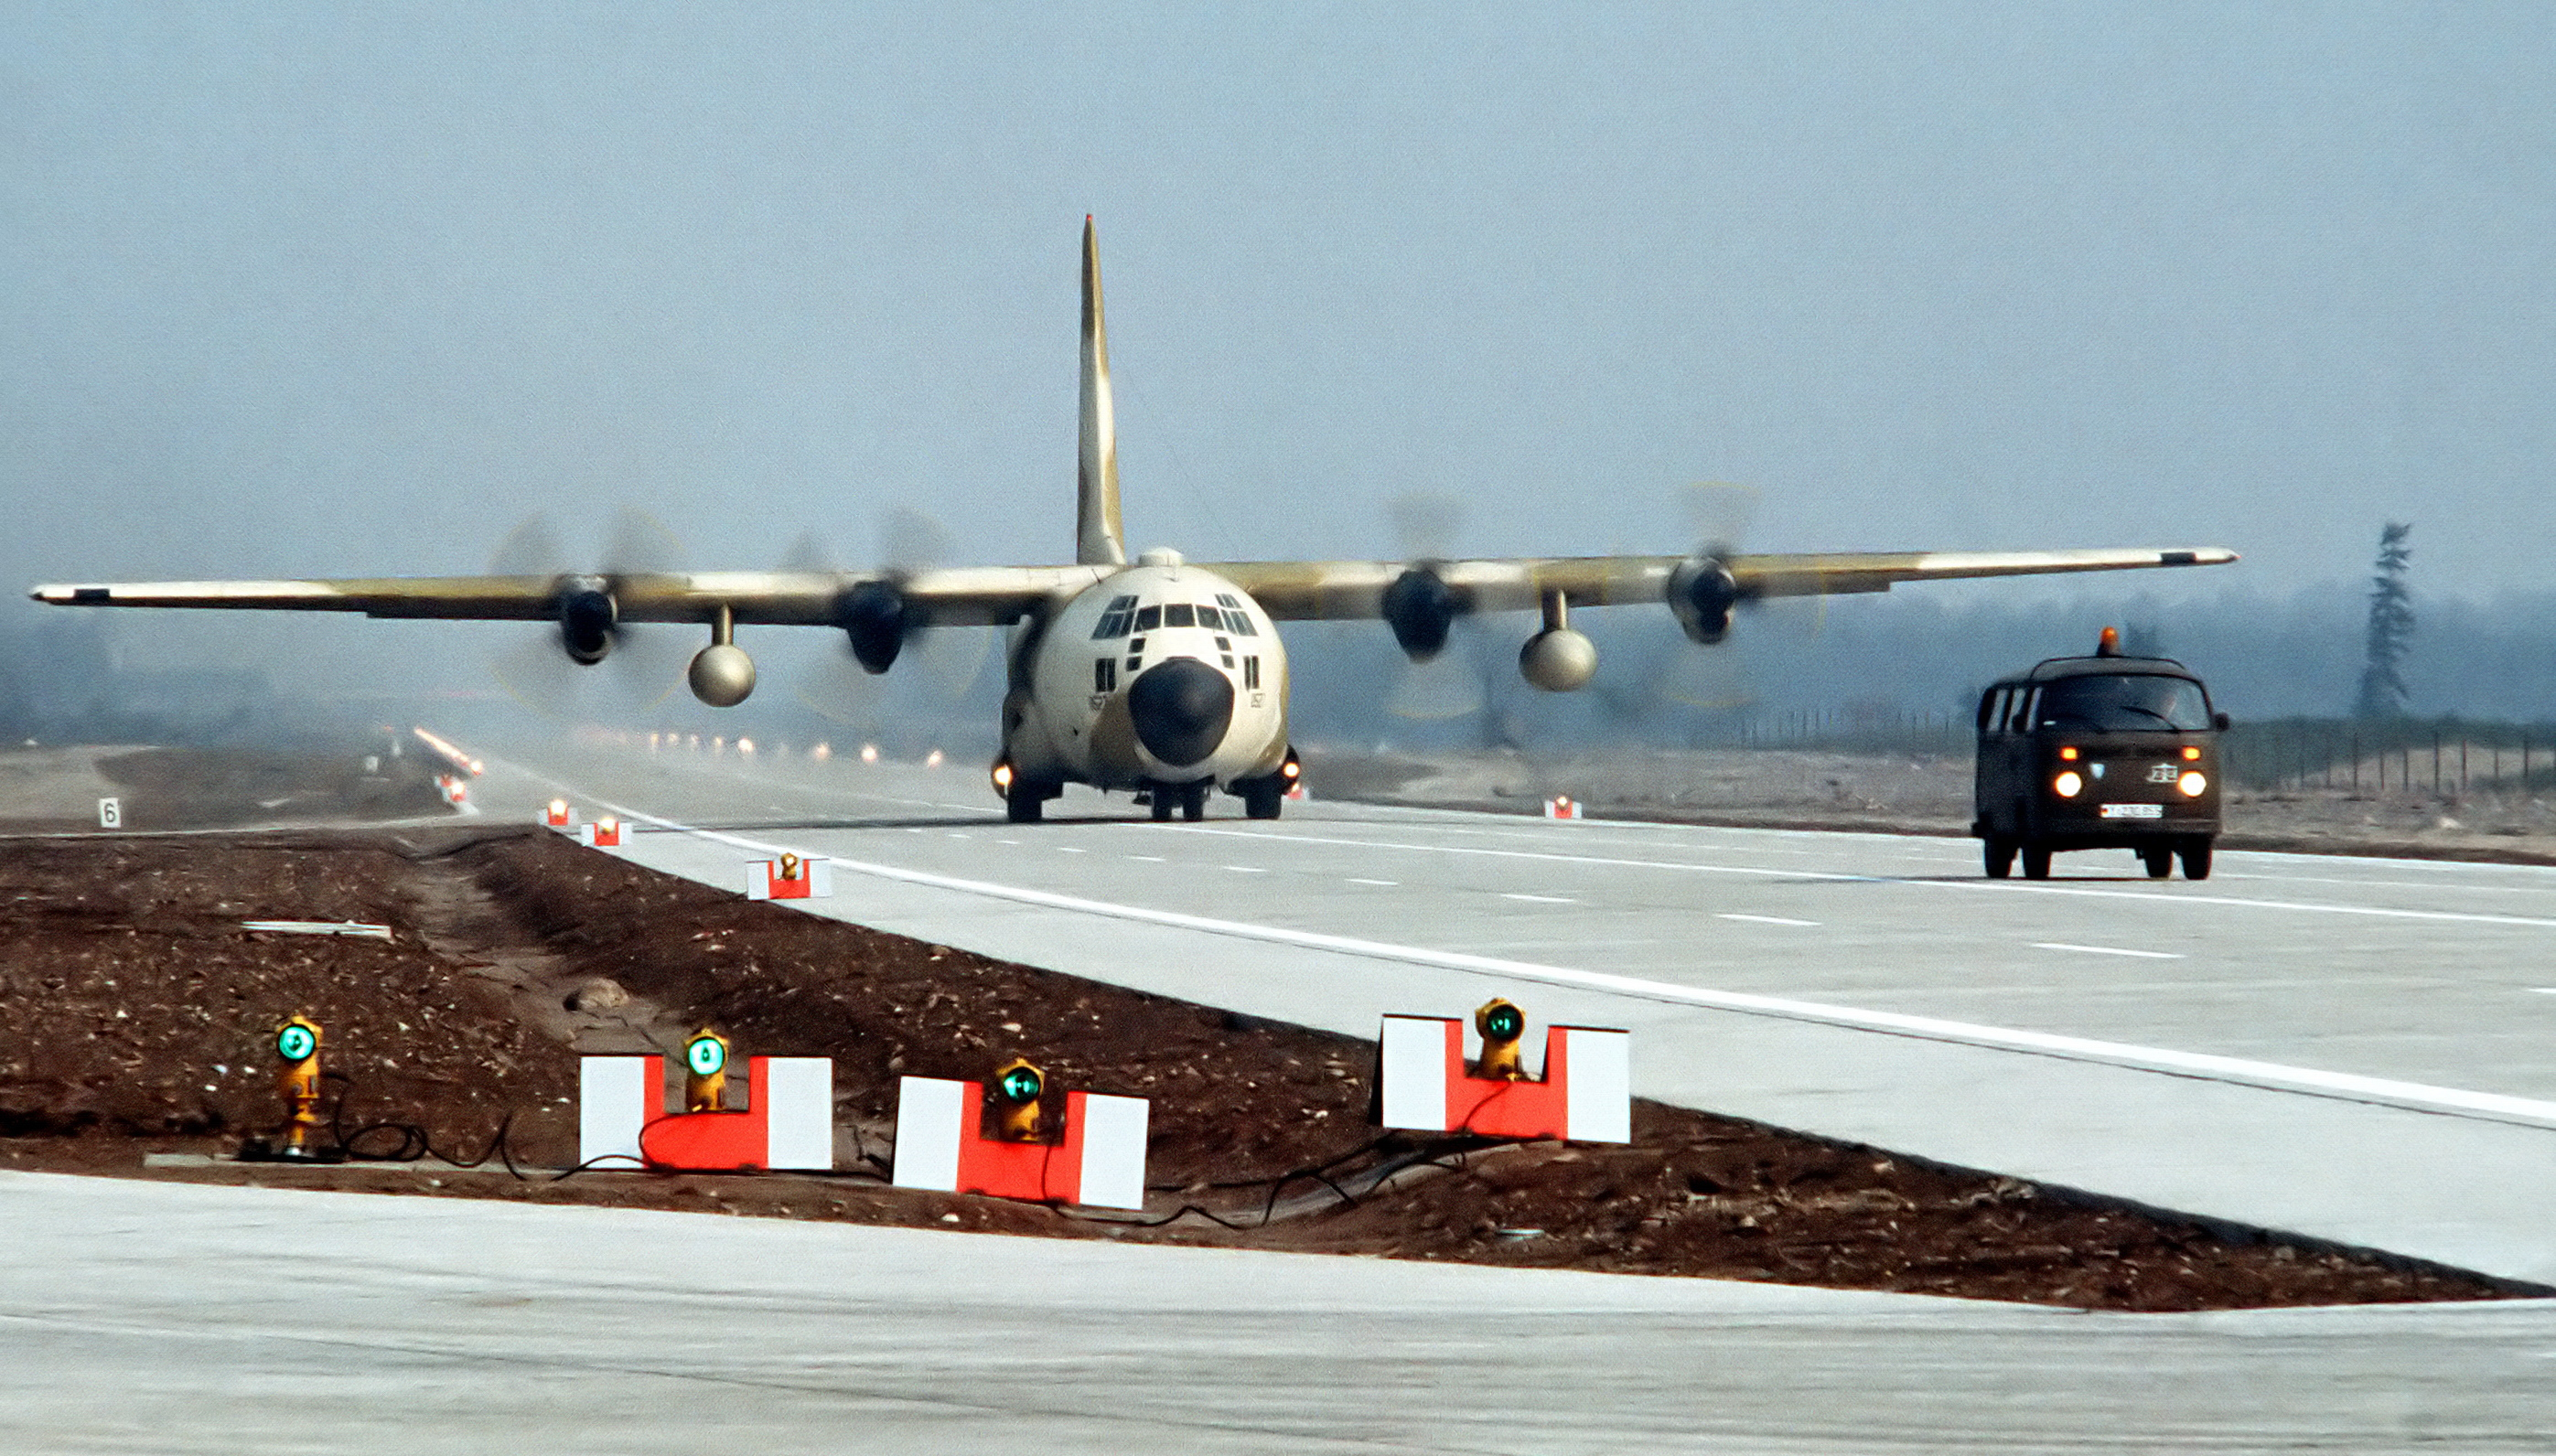 C130_Hercules_taxidriving_on_Autobahn_DoD_DF-ST-84-09439